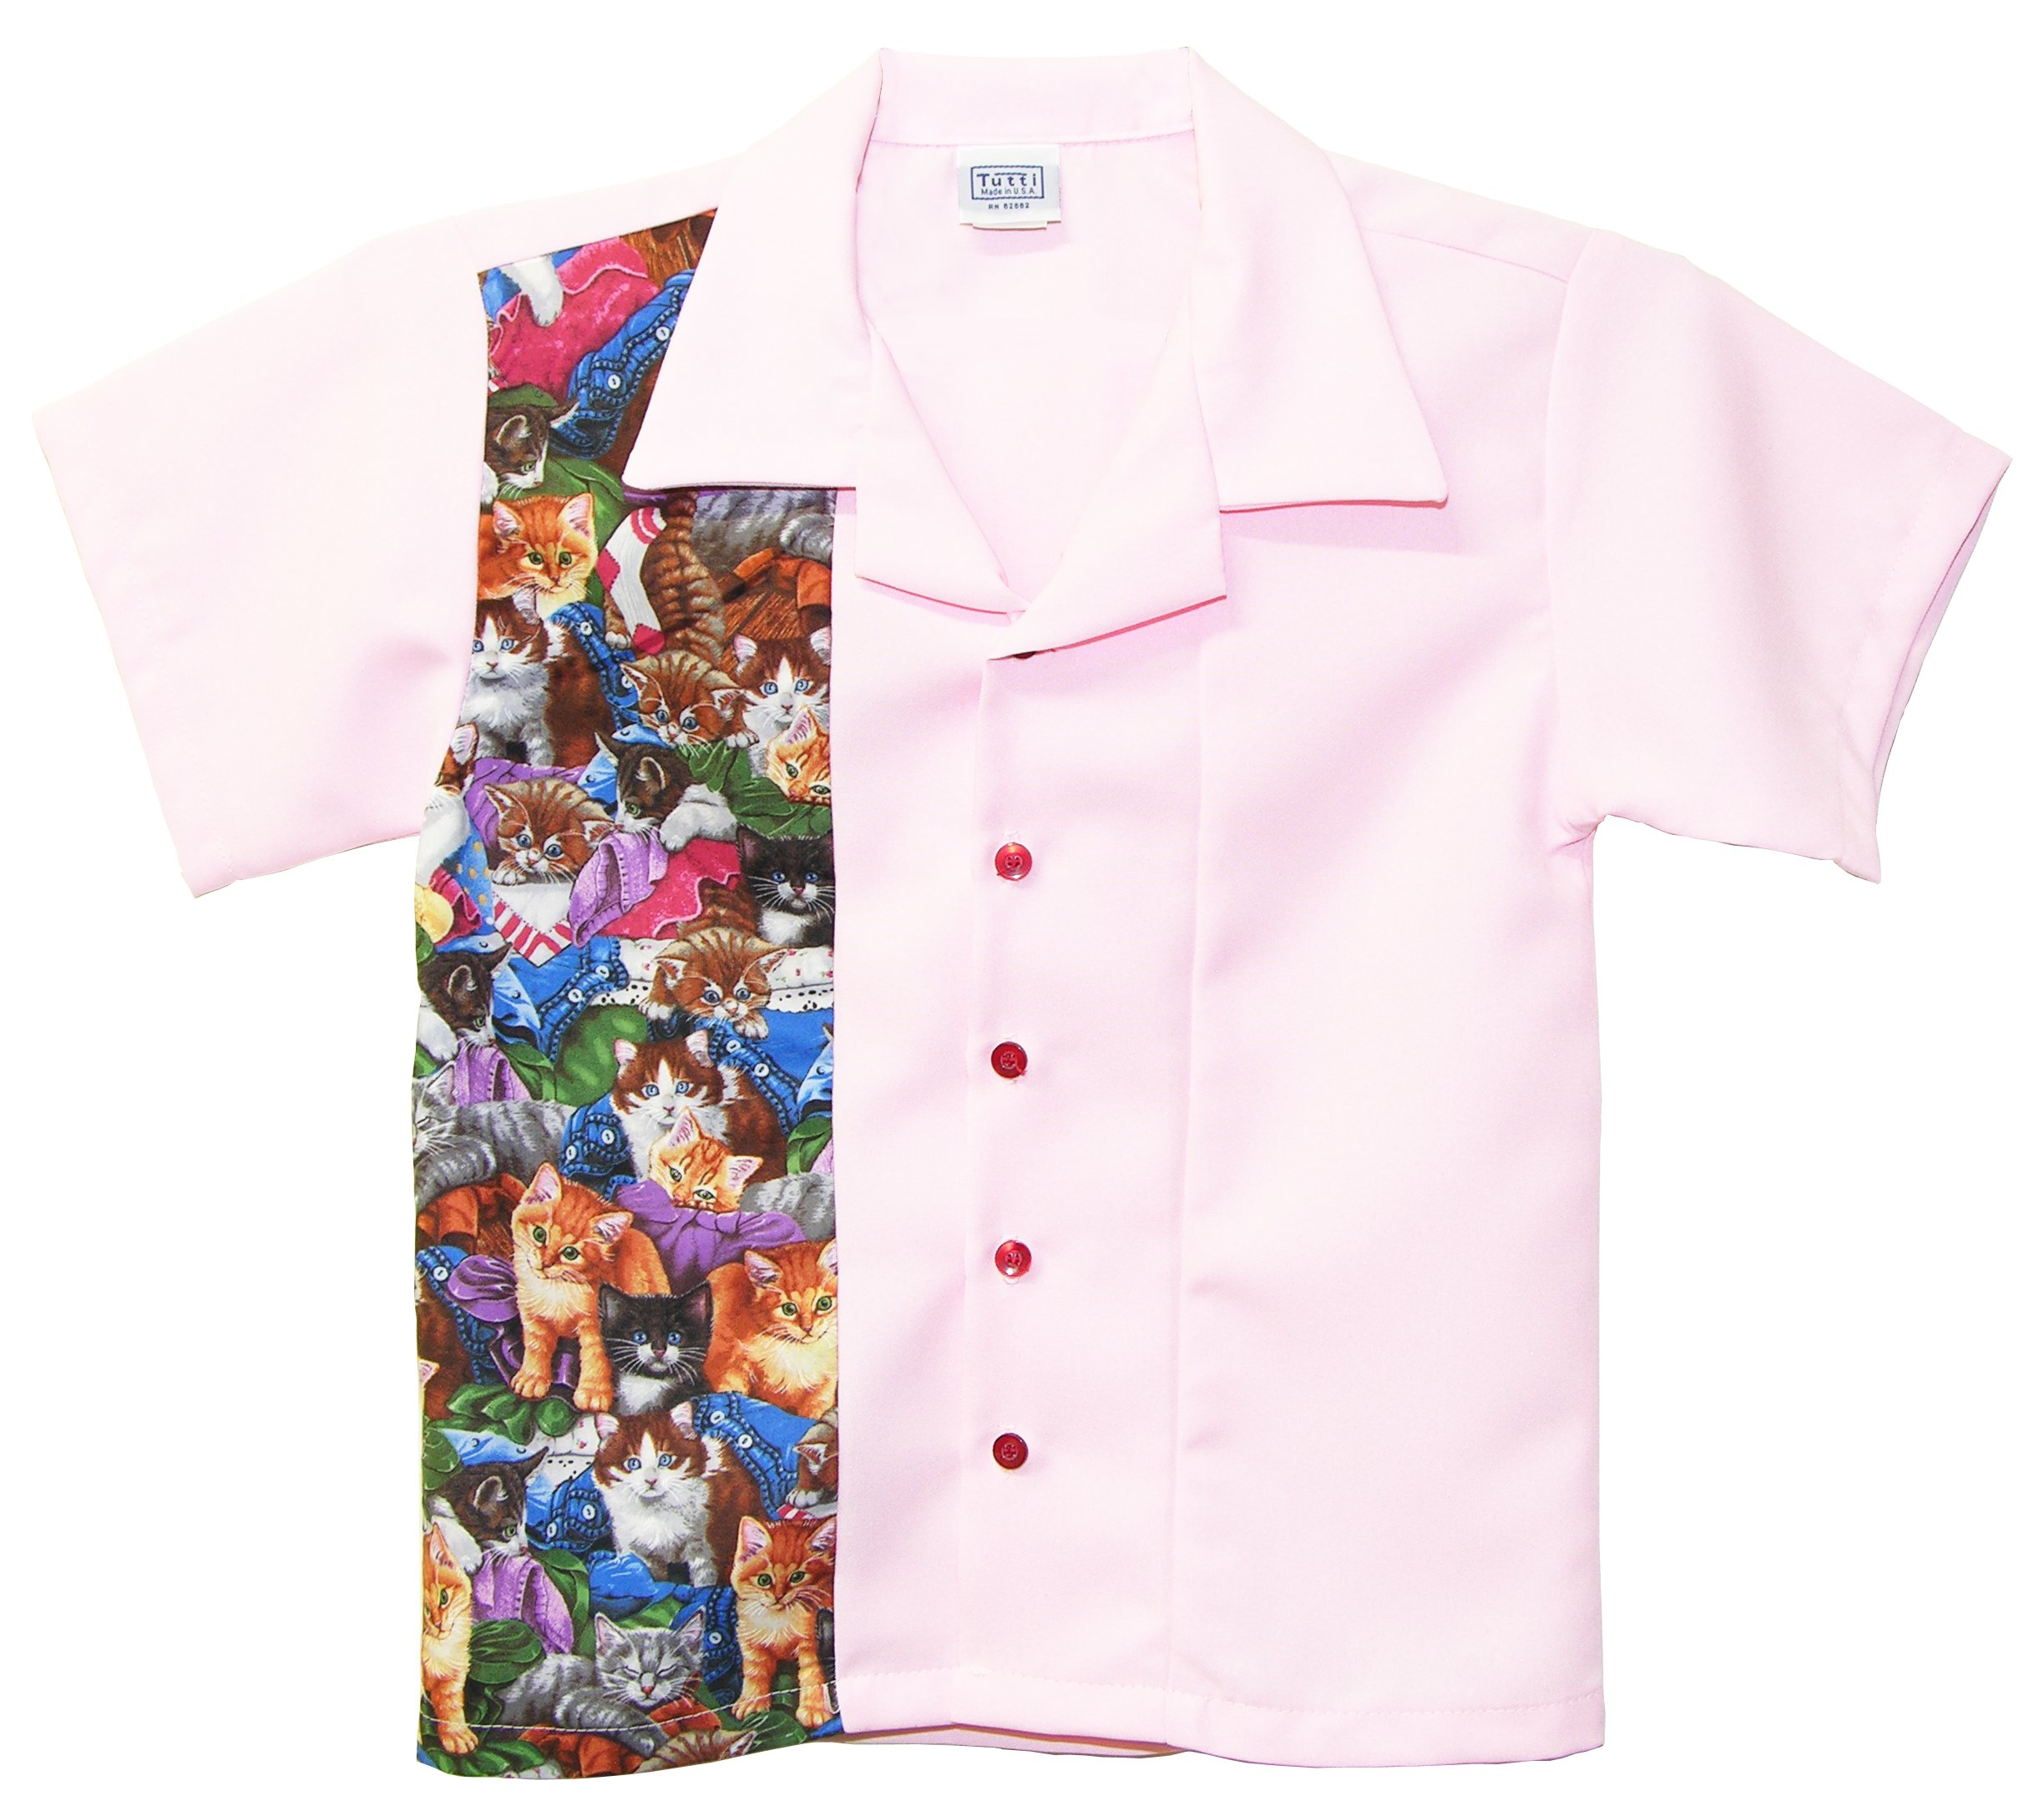 Kids Bowling Shirt Children Size Pink with Cute Cat Print (Small 2T-3T) by Tutti